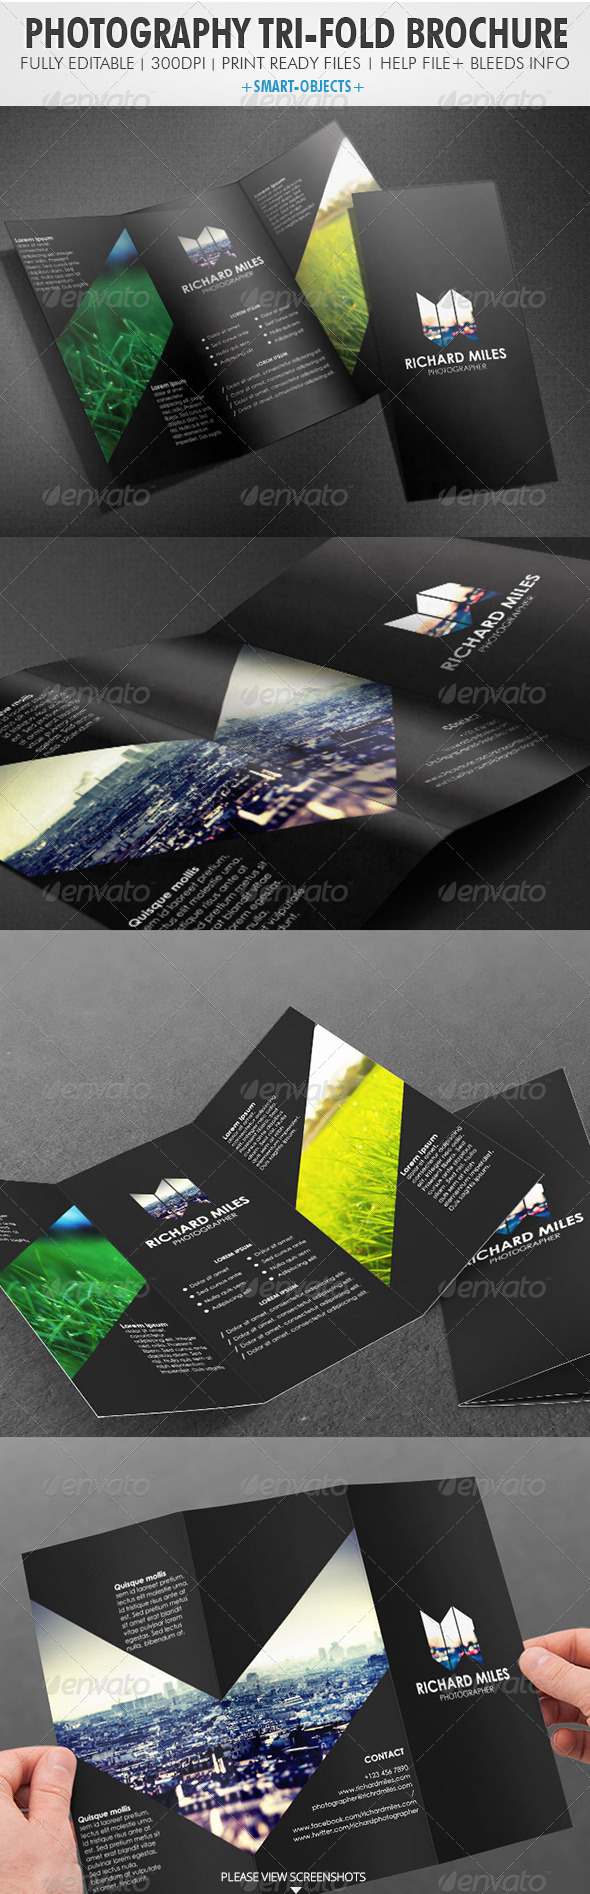 GraphicRiver Photography Tri-fold Brochure 4027623